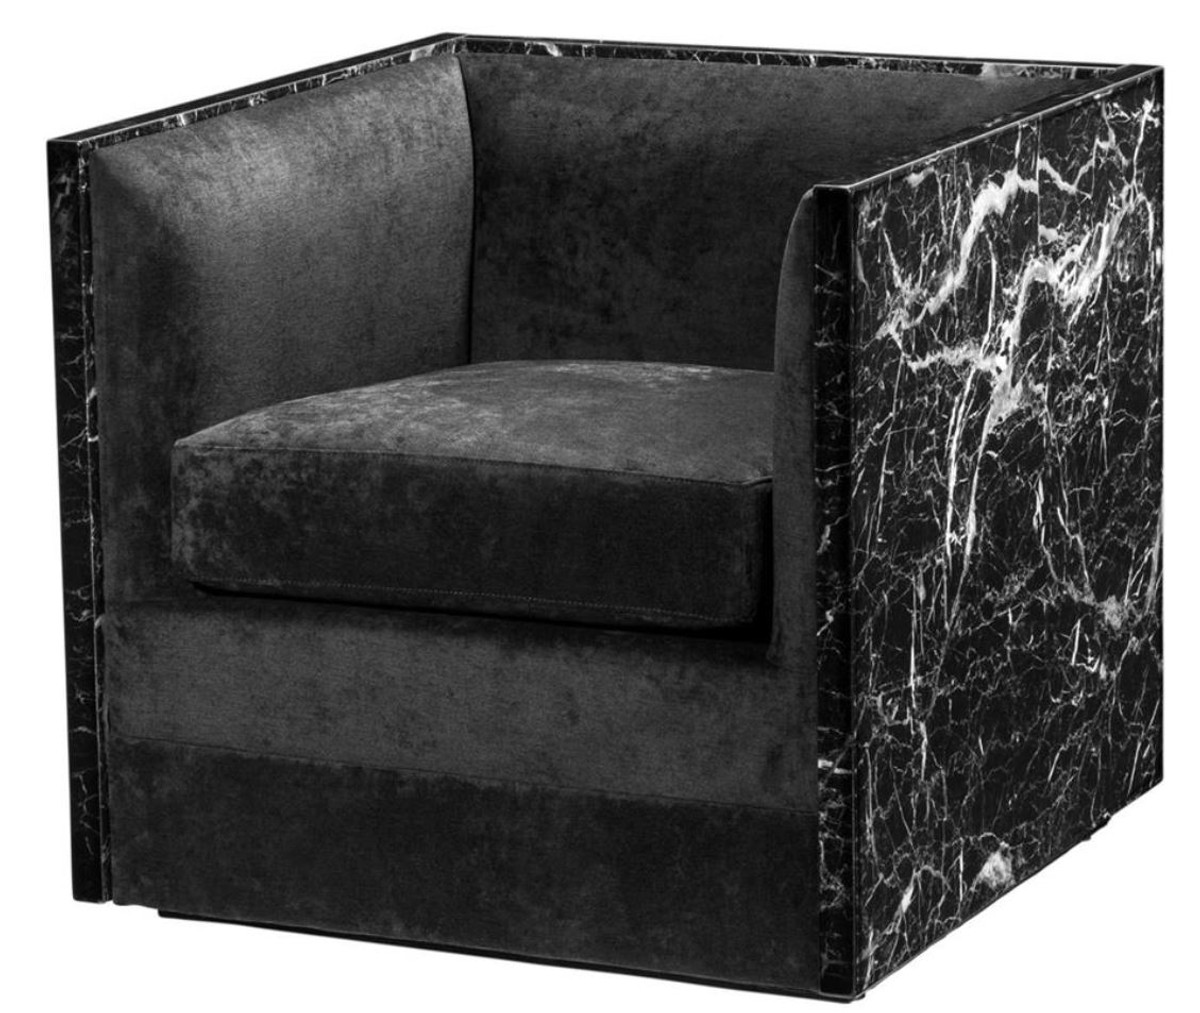 Hotel Sessel Casa Padrino Luxus Hotel Sessel Schwarz 71 X 70 X H 68 Cm Limited Edition